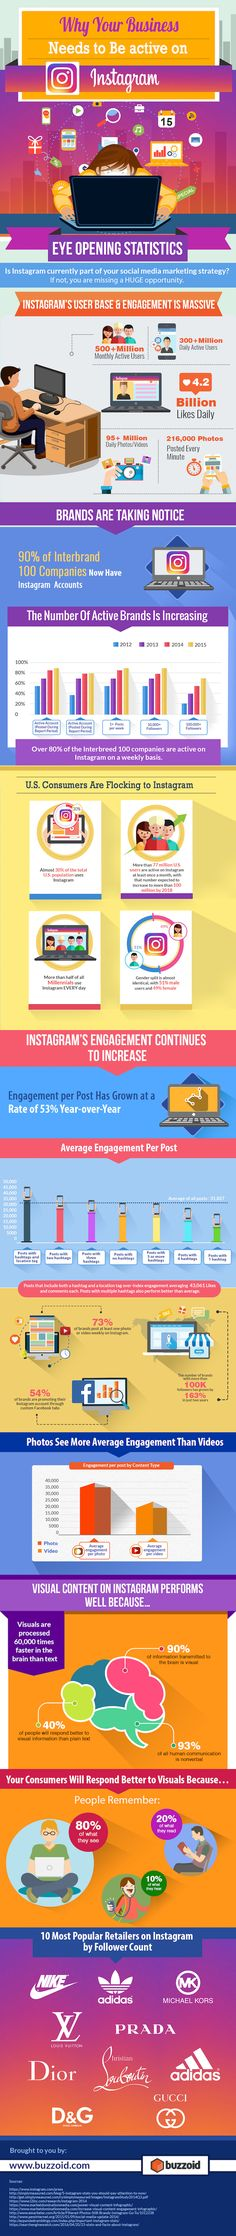 Why Instagram Needs to Be Part of Your Marketing Strategy [Infographic] - @socialmedia2day